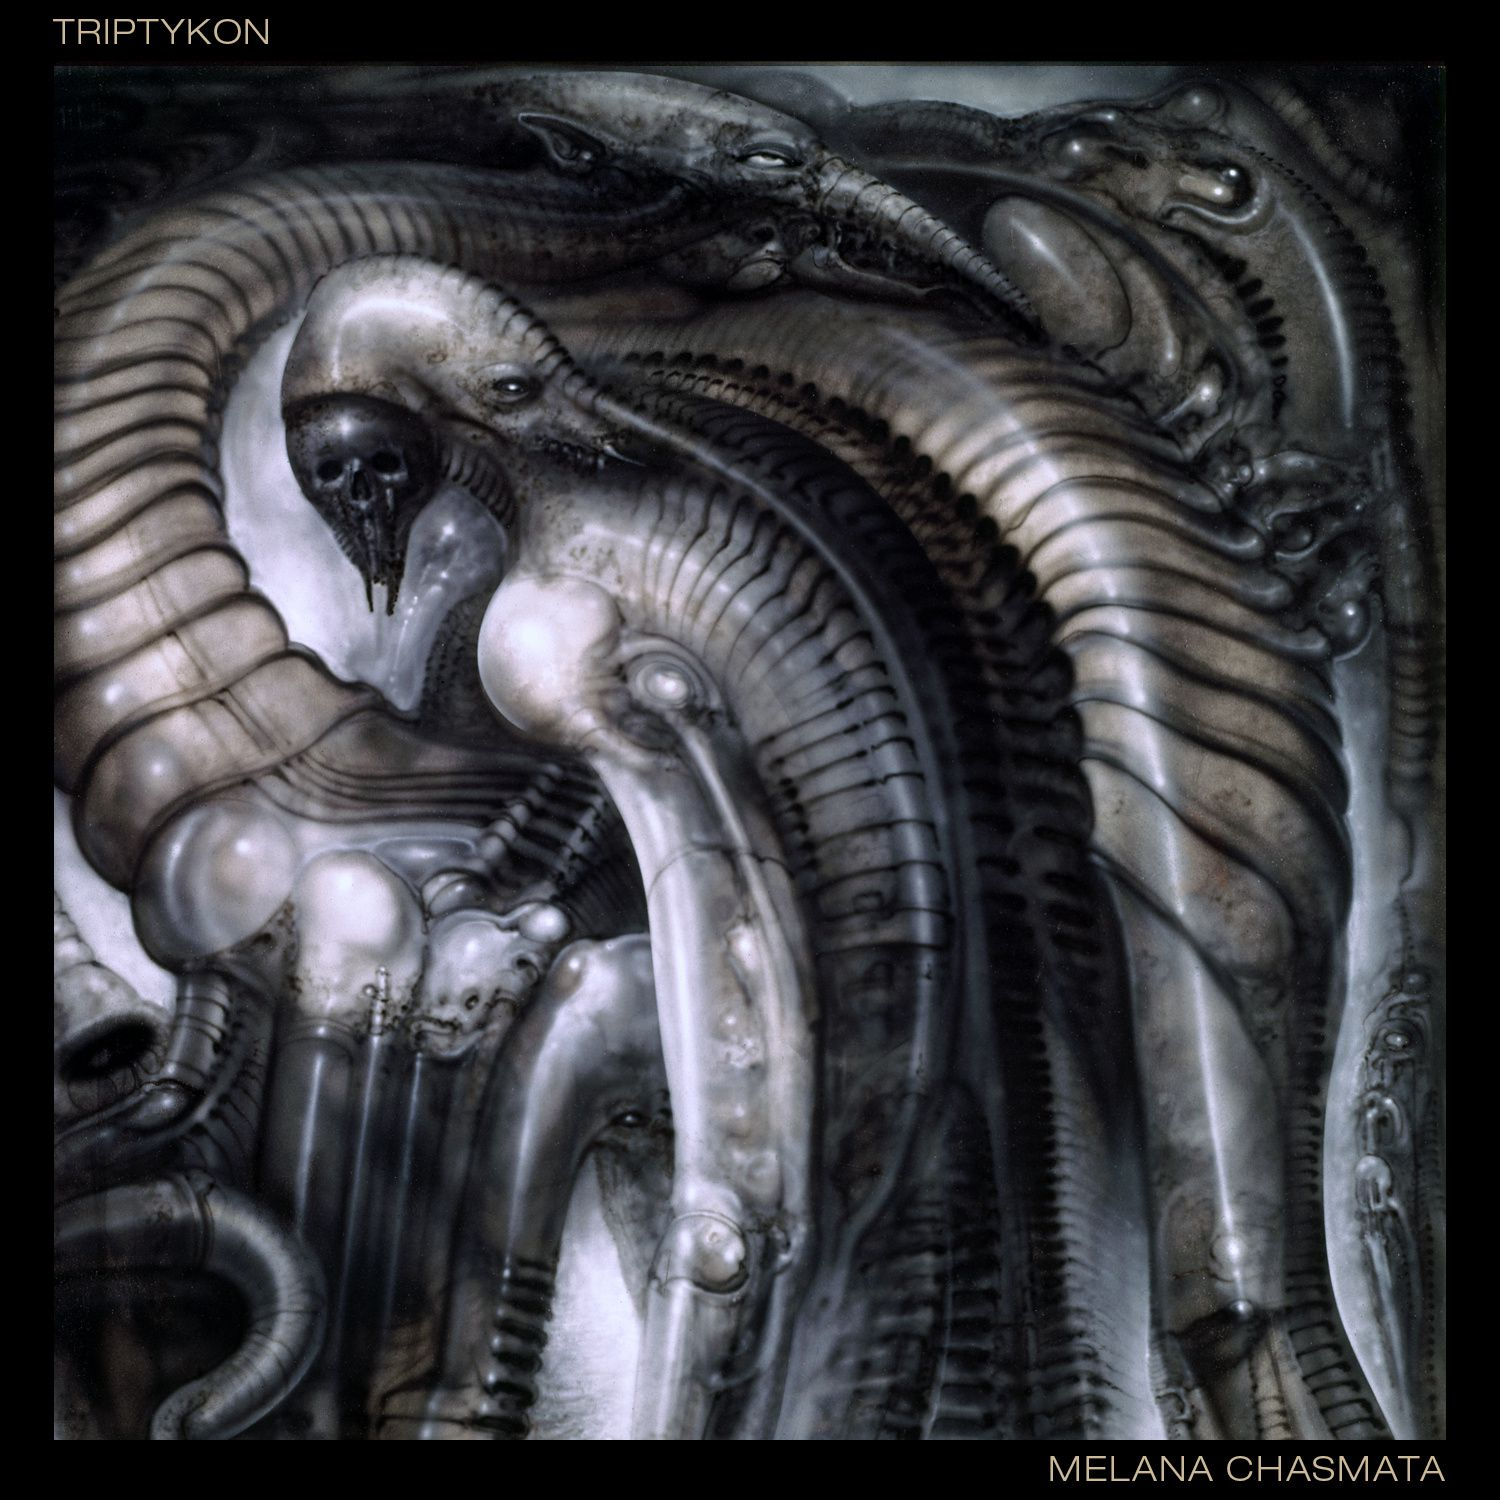 Cover from the coming TRIPTYKON album